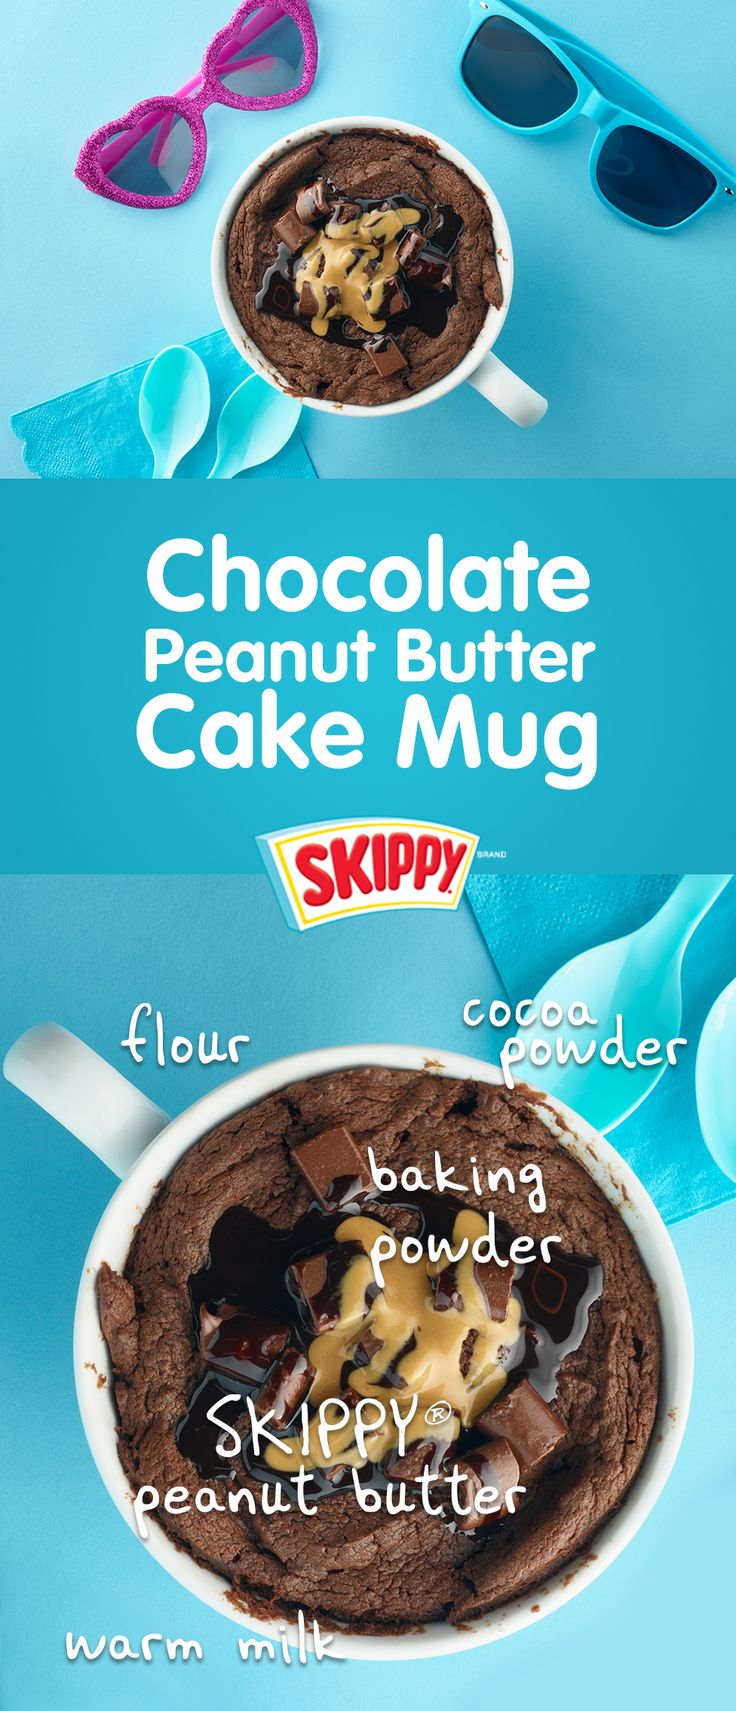 Makes 2 servings ½ cup all-purpose flour ¼ cup unsweetened cocoa powder ¼ cup sugar ½ teaspoon baking powder ¼ teaspoon salt 3 tablespoons Skippy® creamy peanut butter ½ cup warm milk ¼ cup butter, melted  1 teaspoon vanilla extract In large bowl, stir together flour and next 4 ingredients. In small bowl, whisk together peanut butter, milk, butter and vanilla. Stir into flour mixture and mix until smooth. Pour batter into 16-ounce microwave-safe mug. Microwave on HIGH 1 minute and 30…